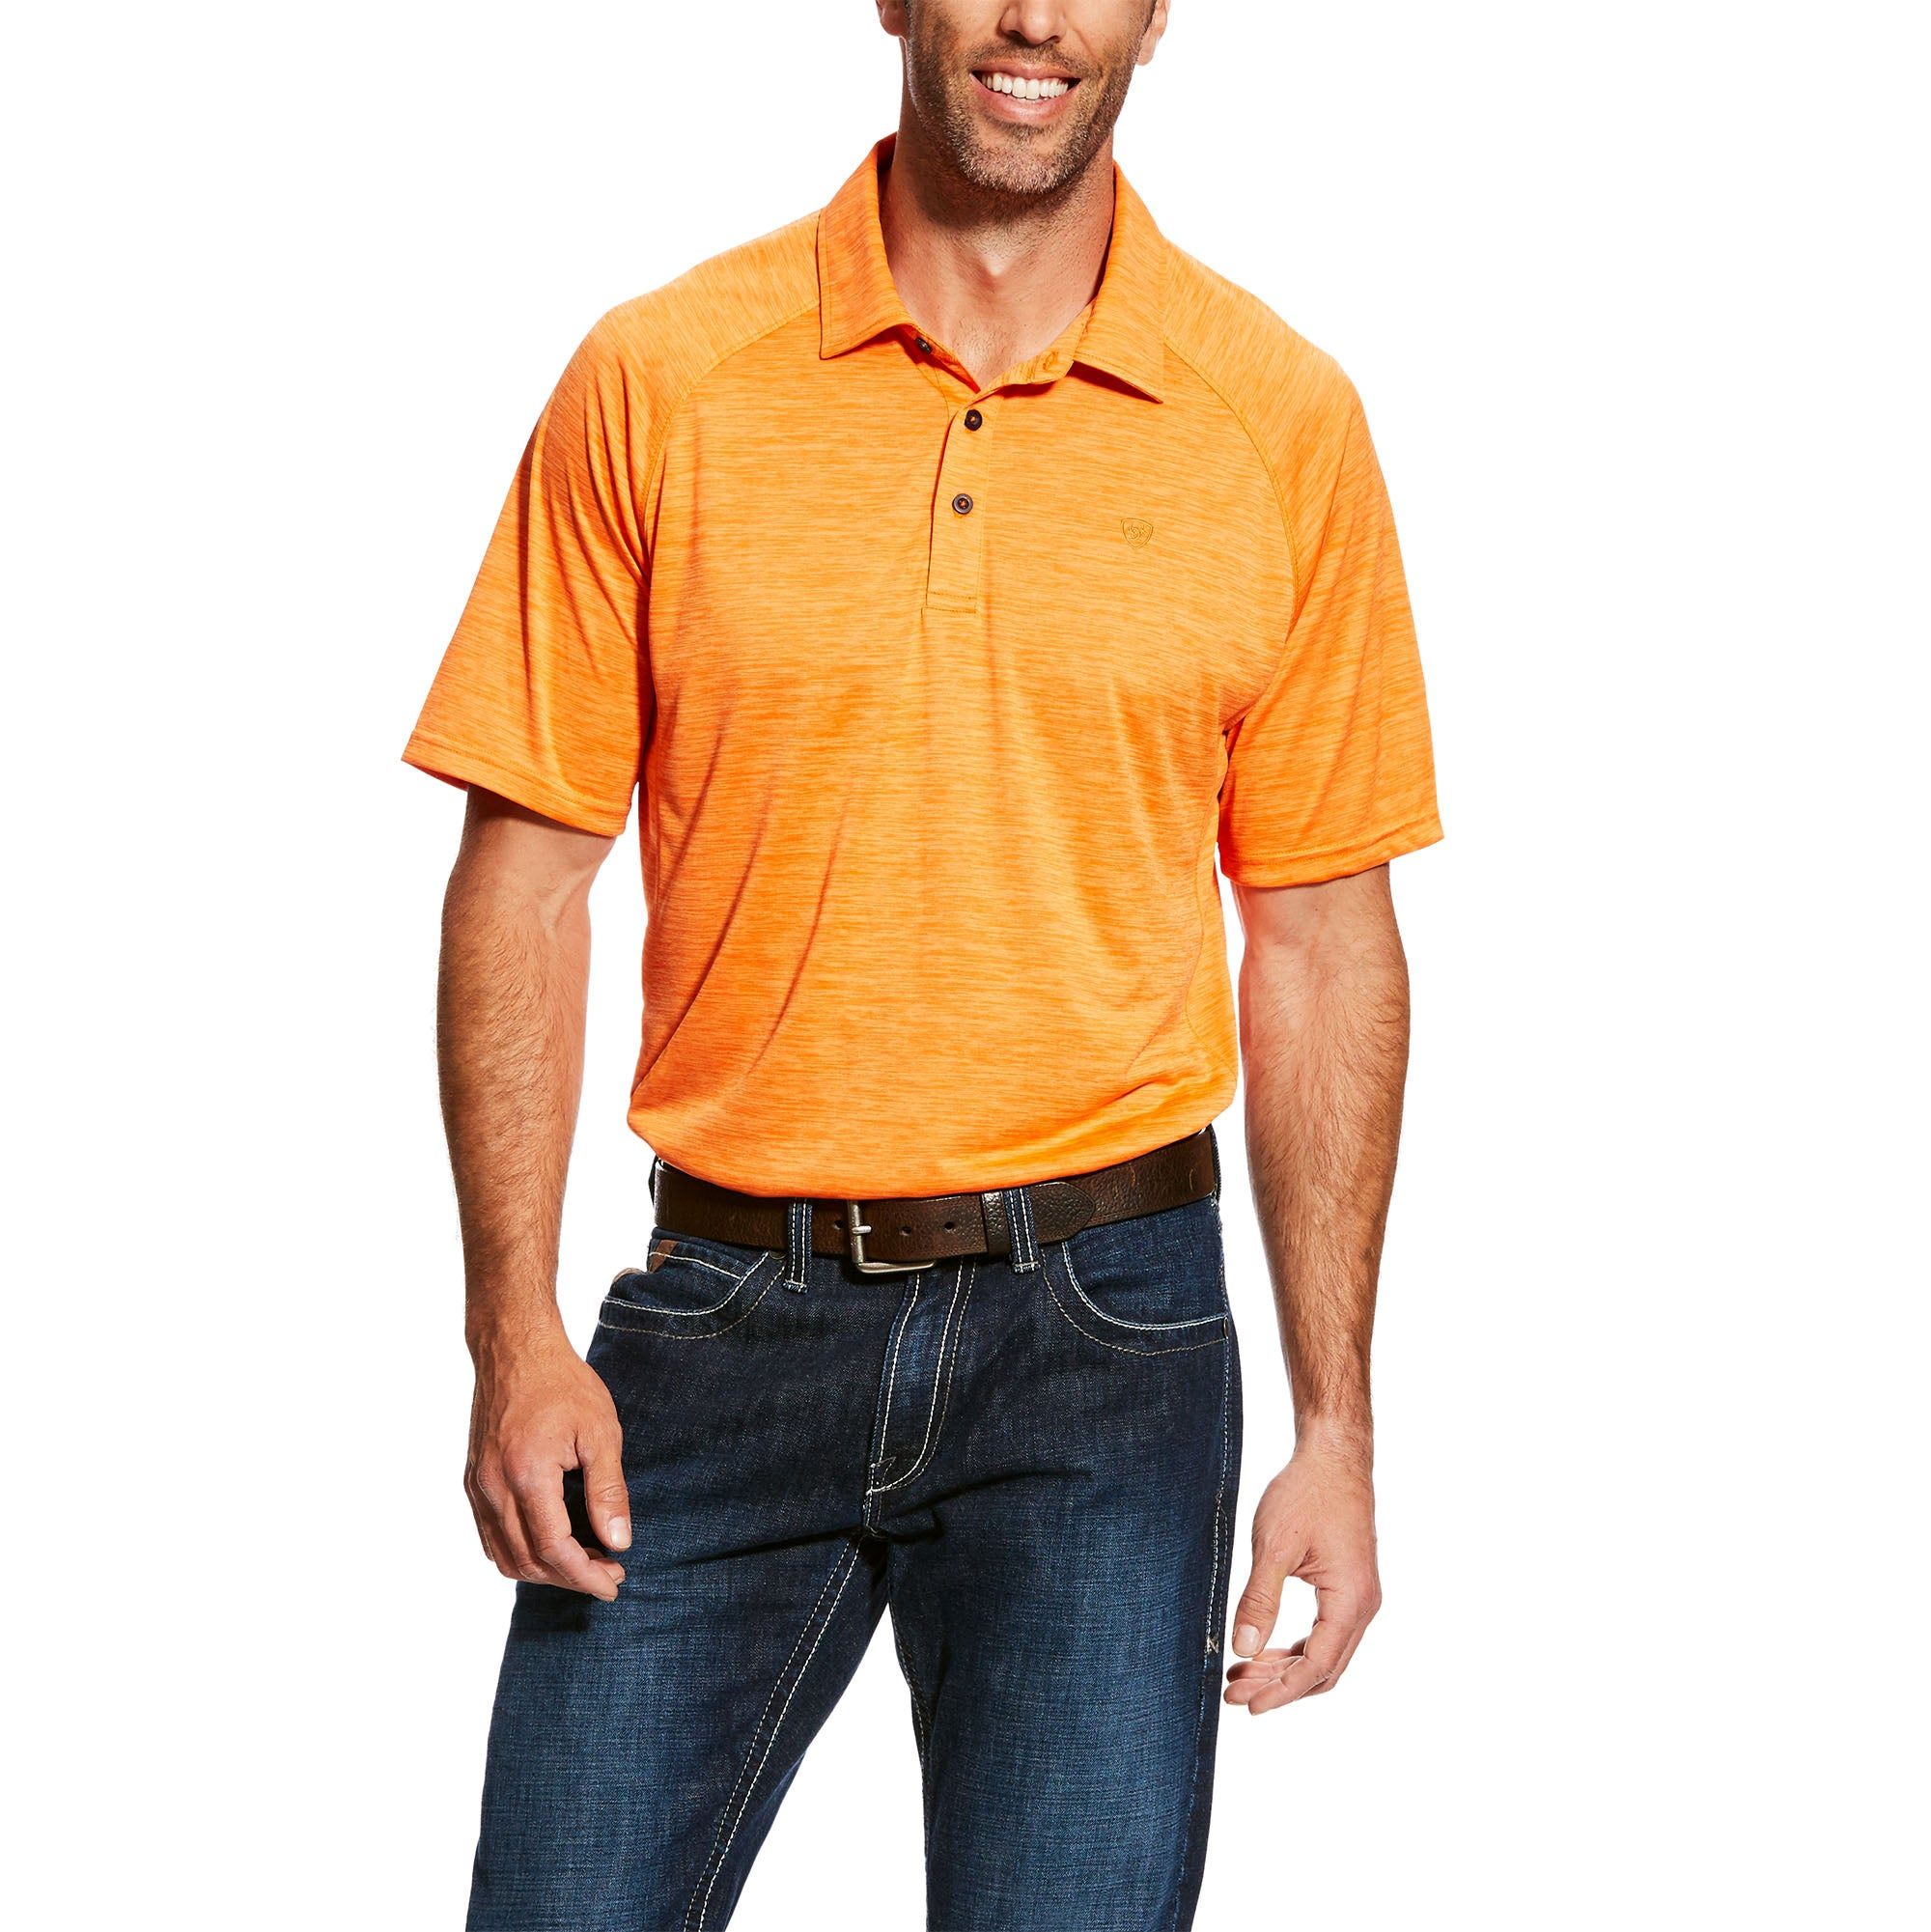 Ariat Charger Men's Polo Shirt